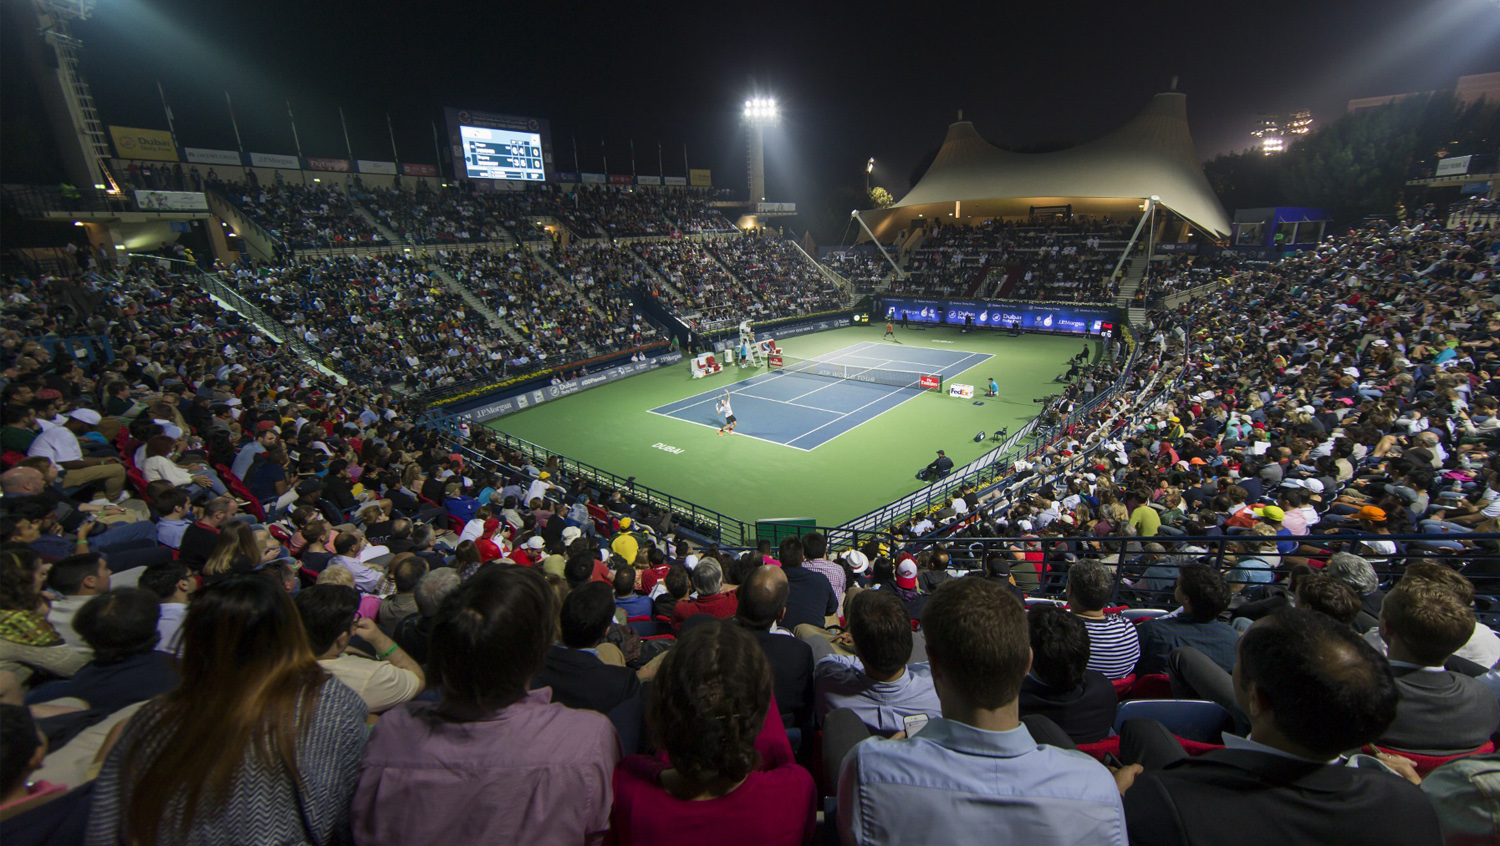 Dubai Duty Free Tennis Stadium Outlet Promolover